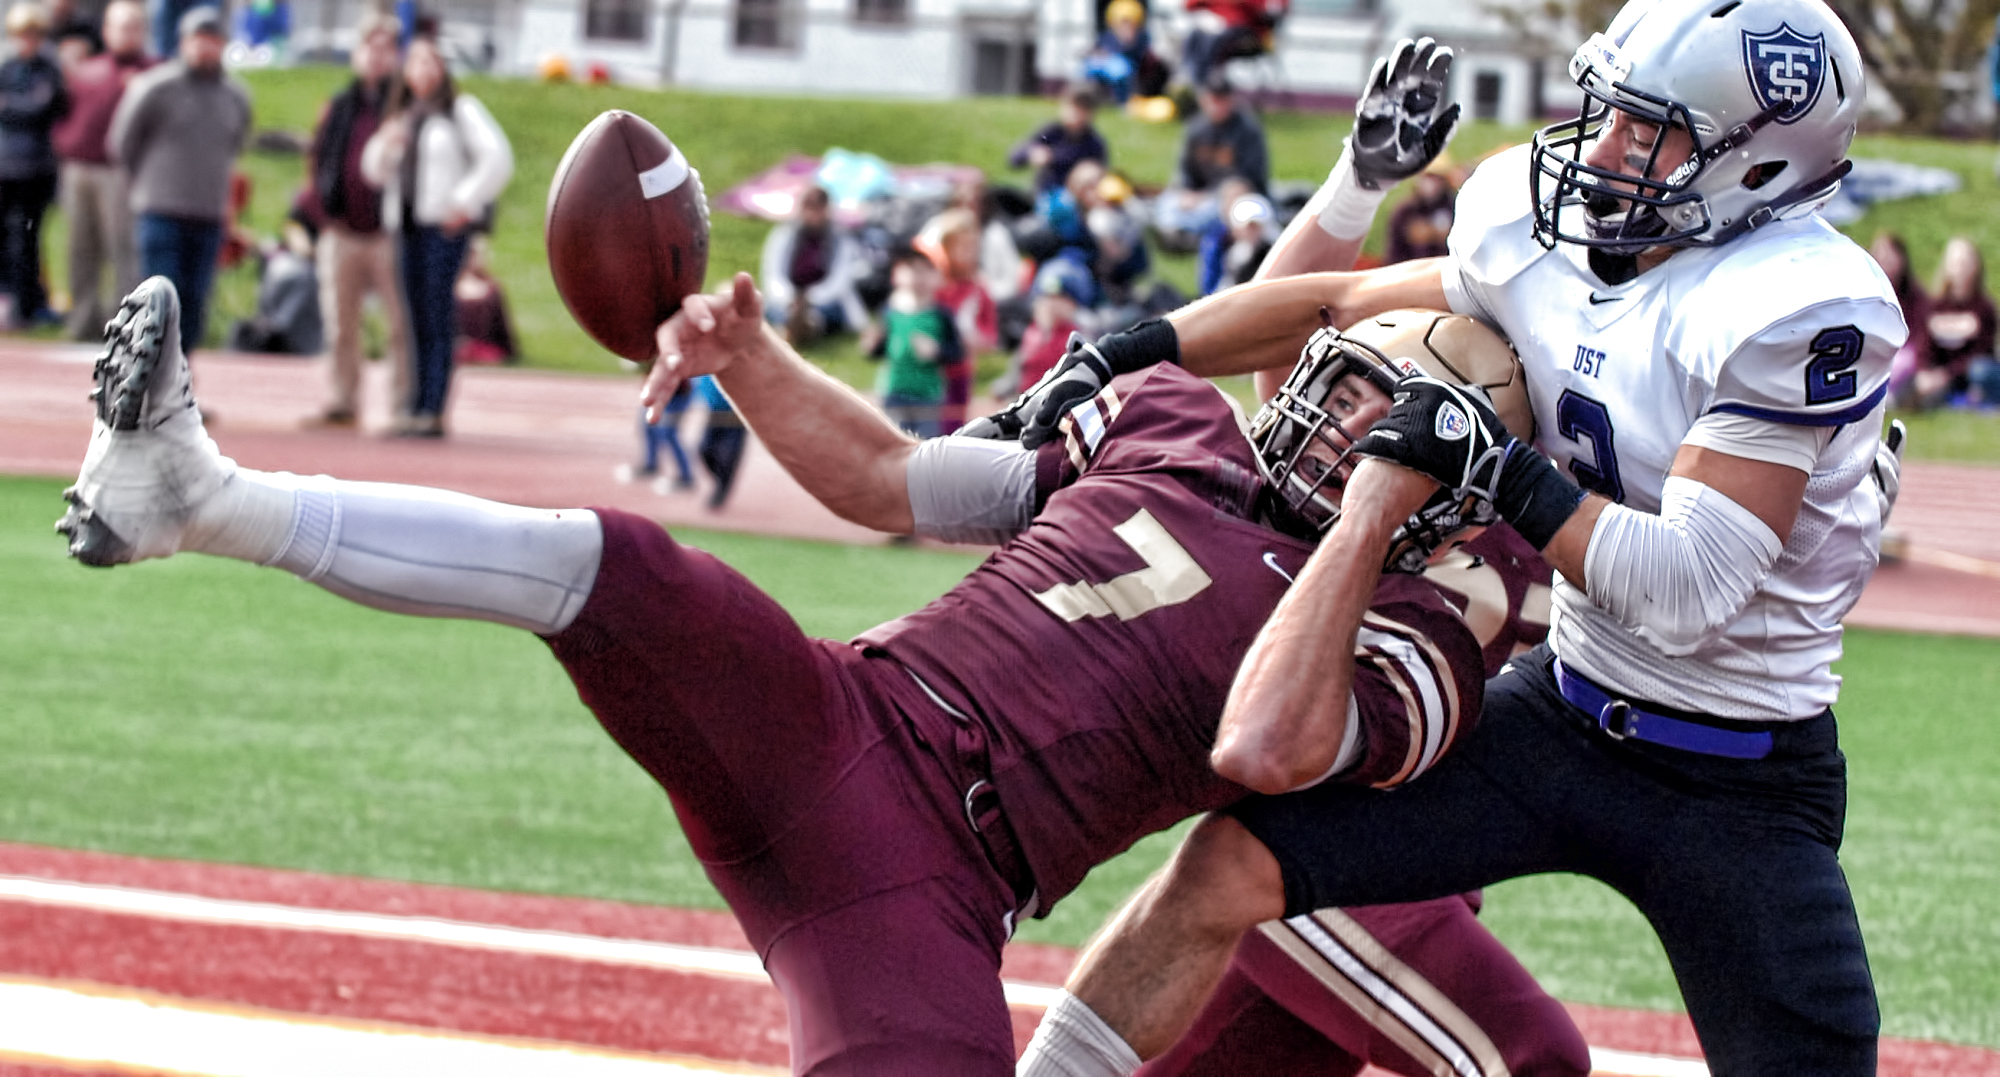 Junior defensive back Dallas Raftevold tries for the interception during the Cobbers' thrilling Homecoming game with  #4 St. Thomas.